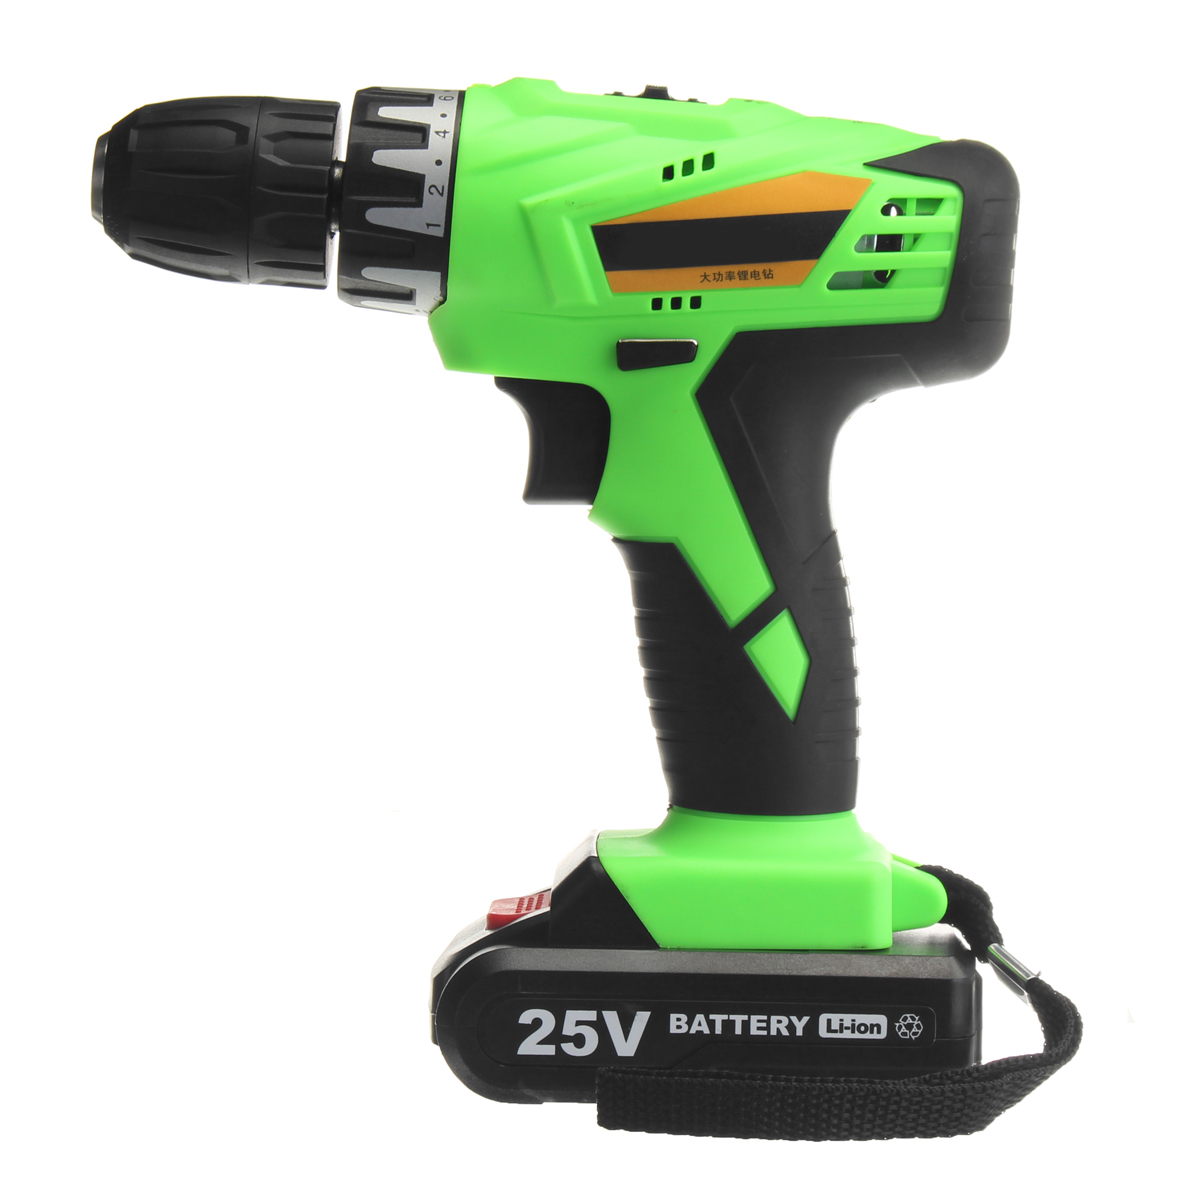 Hot 25V Cordless Power Drill 1.3A Output 2 Lithium-Ion Battery Rechargeable Electric Screwdriver Kit Repair Tool With ChargerHot 25V Cordless Power Drill 1.3A Output 2 Lithium-Ion Battery Rechargeable Electric Screwdriver Kit Repair Tool With Charger